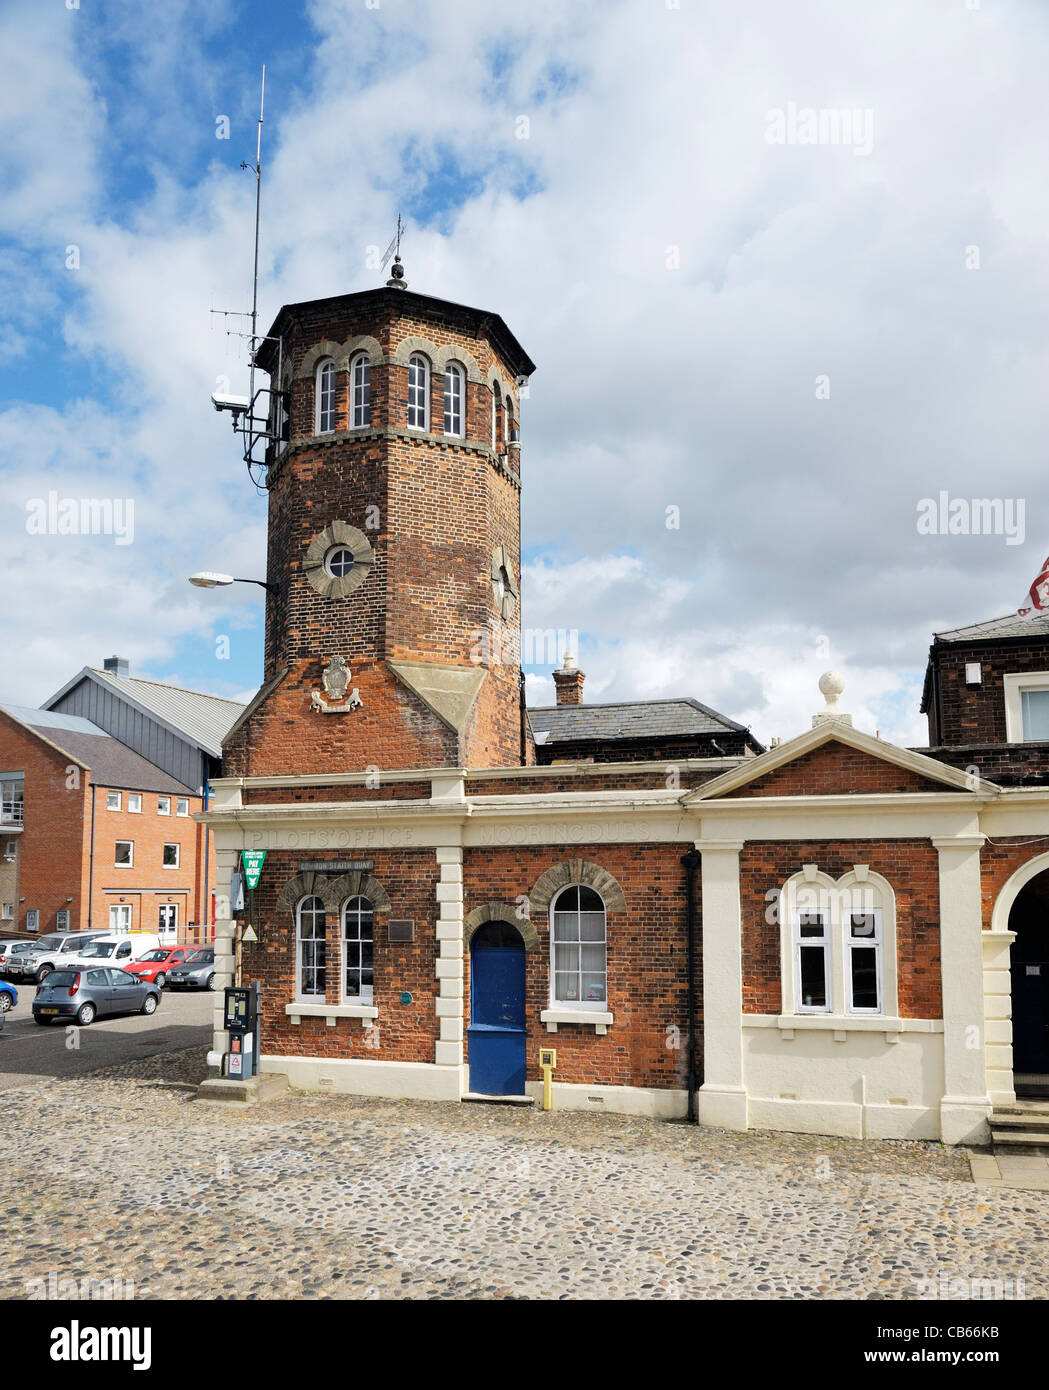 The Pilot's Office and tower at the end of Ferry Street in the ancient port town of Kings Lynn, Norfolk, England - Stock Image